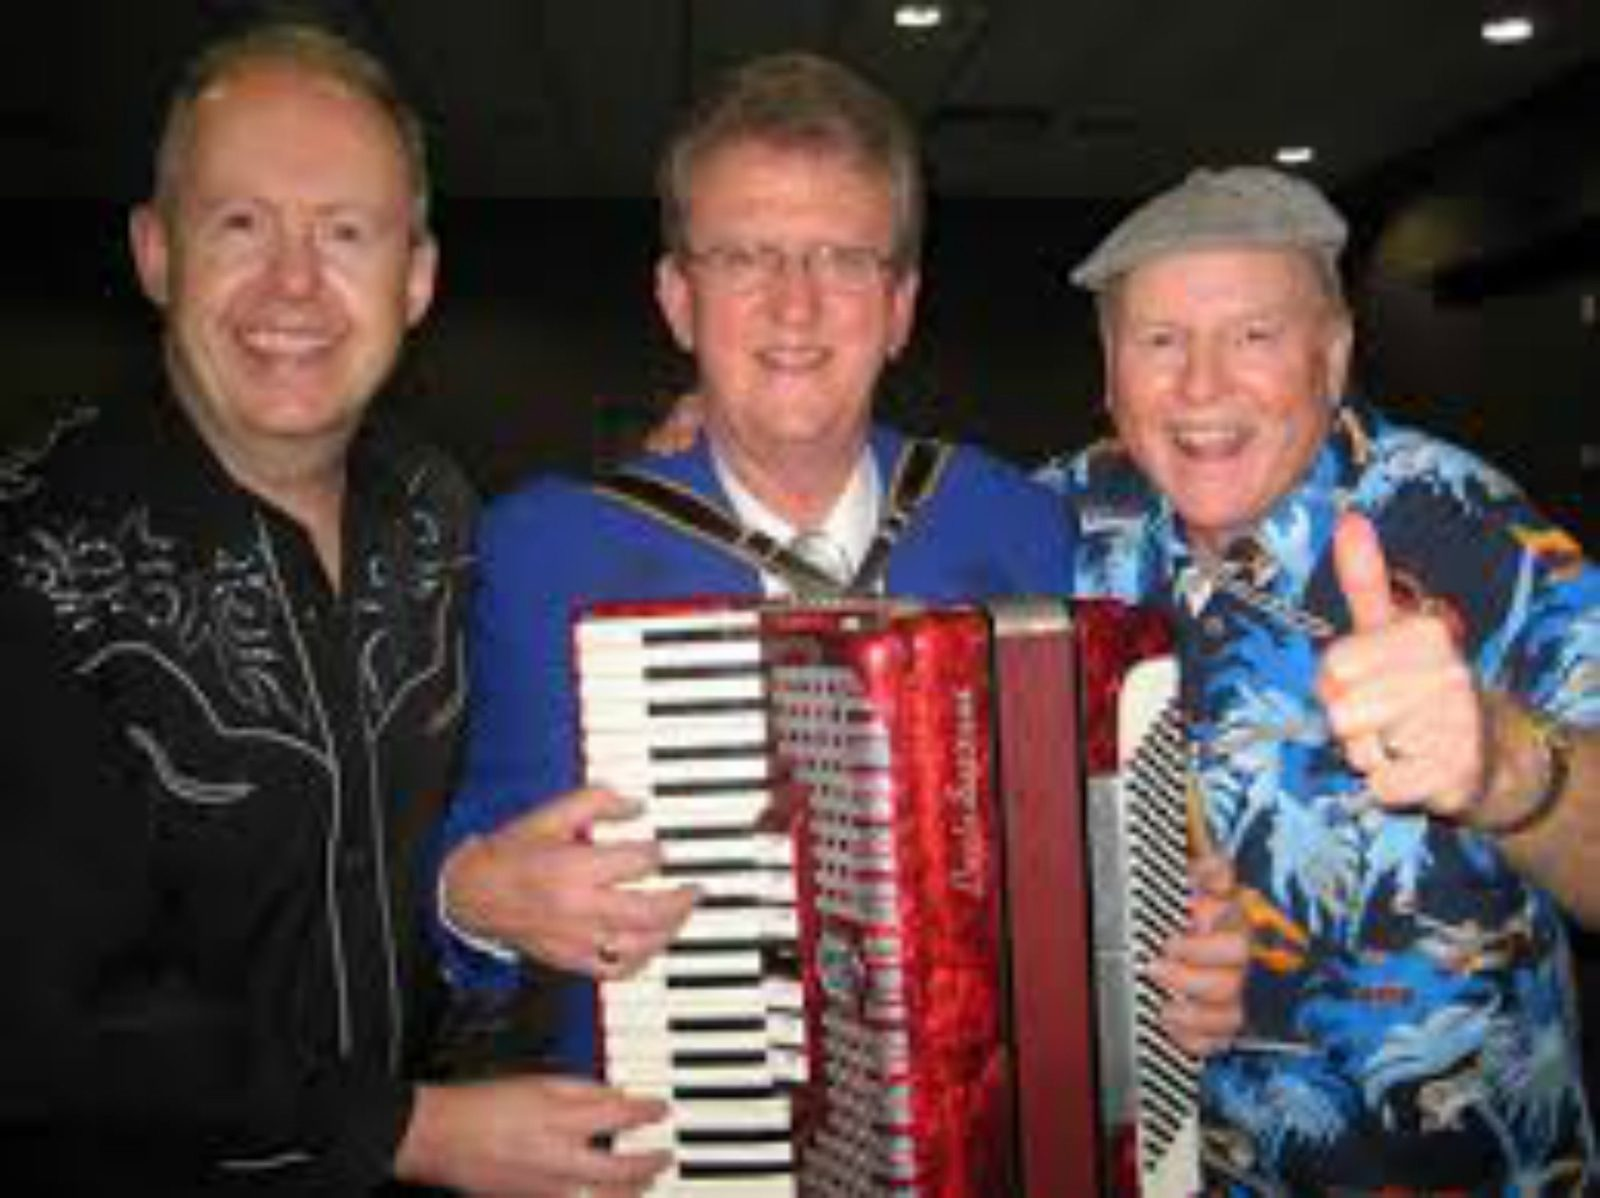 The Howie Bros. and Wayne Horsburgh will entertain at Young Bowling Club on May 28.